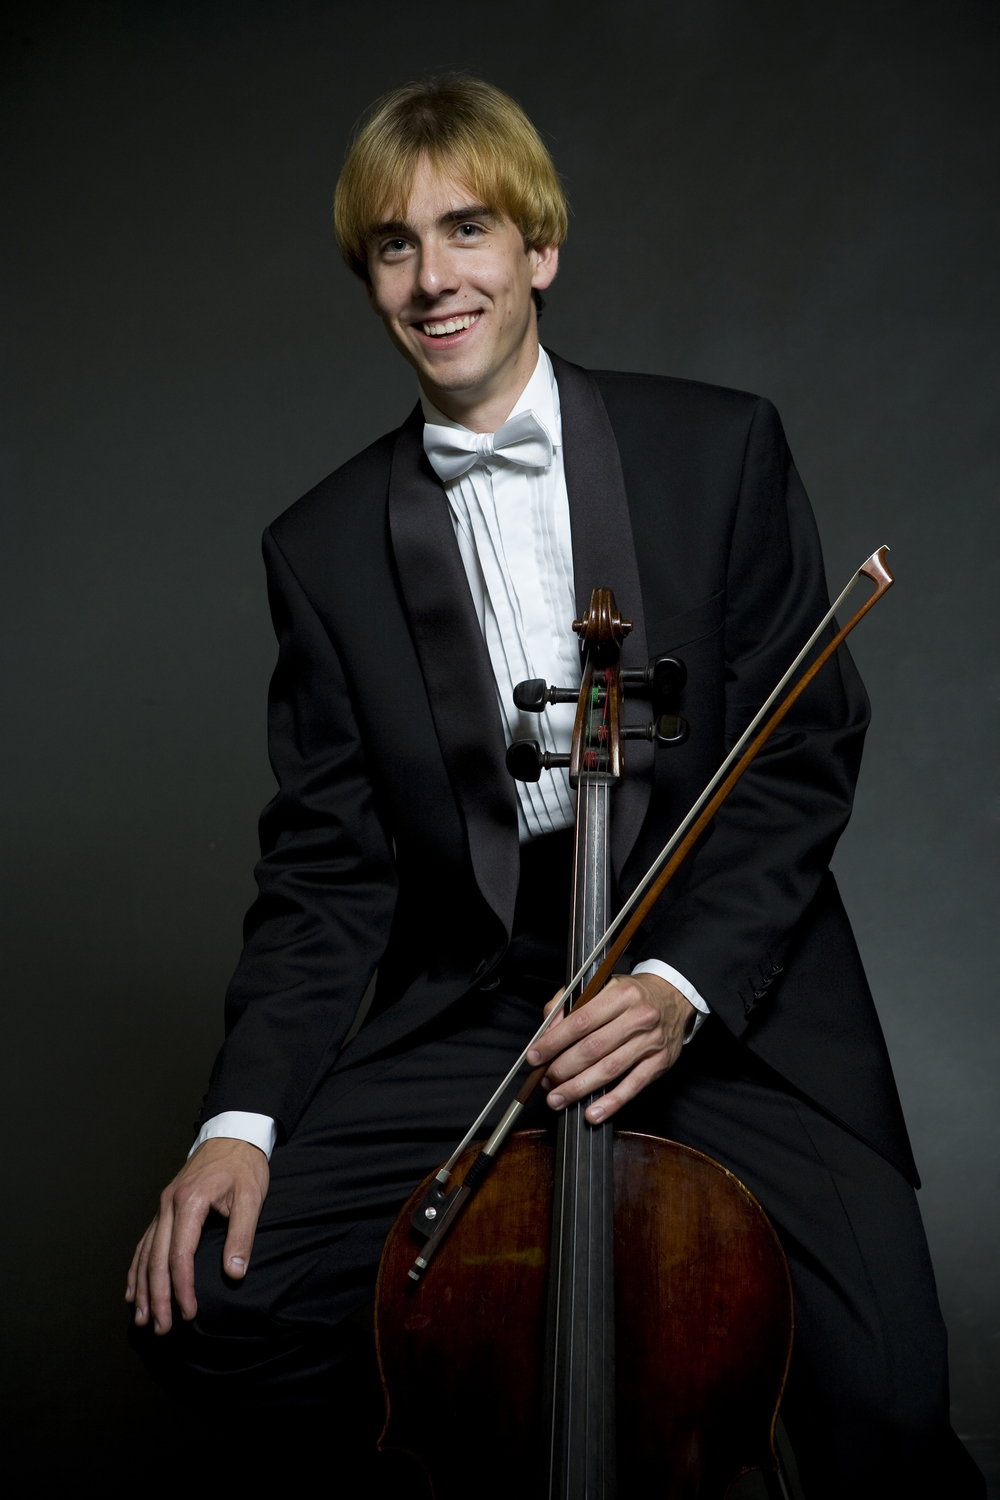 Jan Ryska, Cello